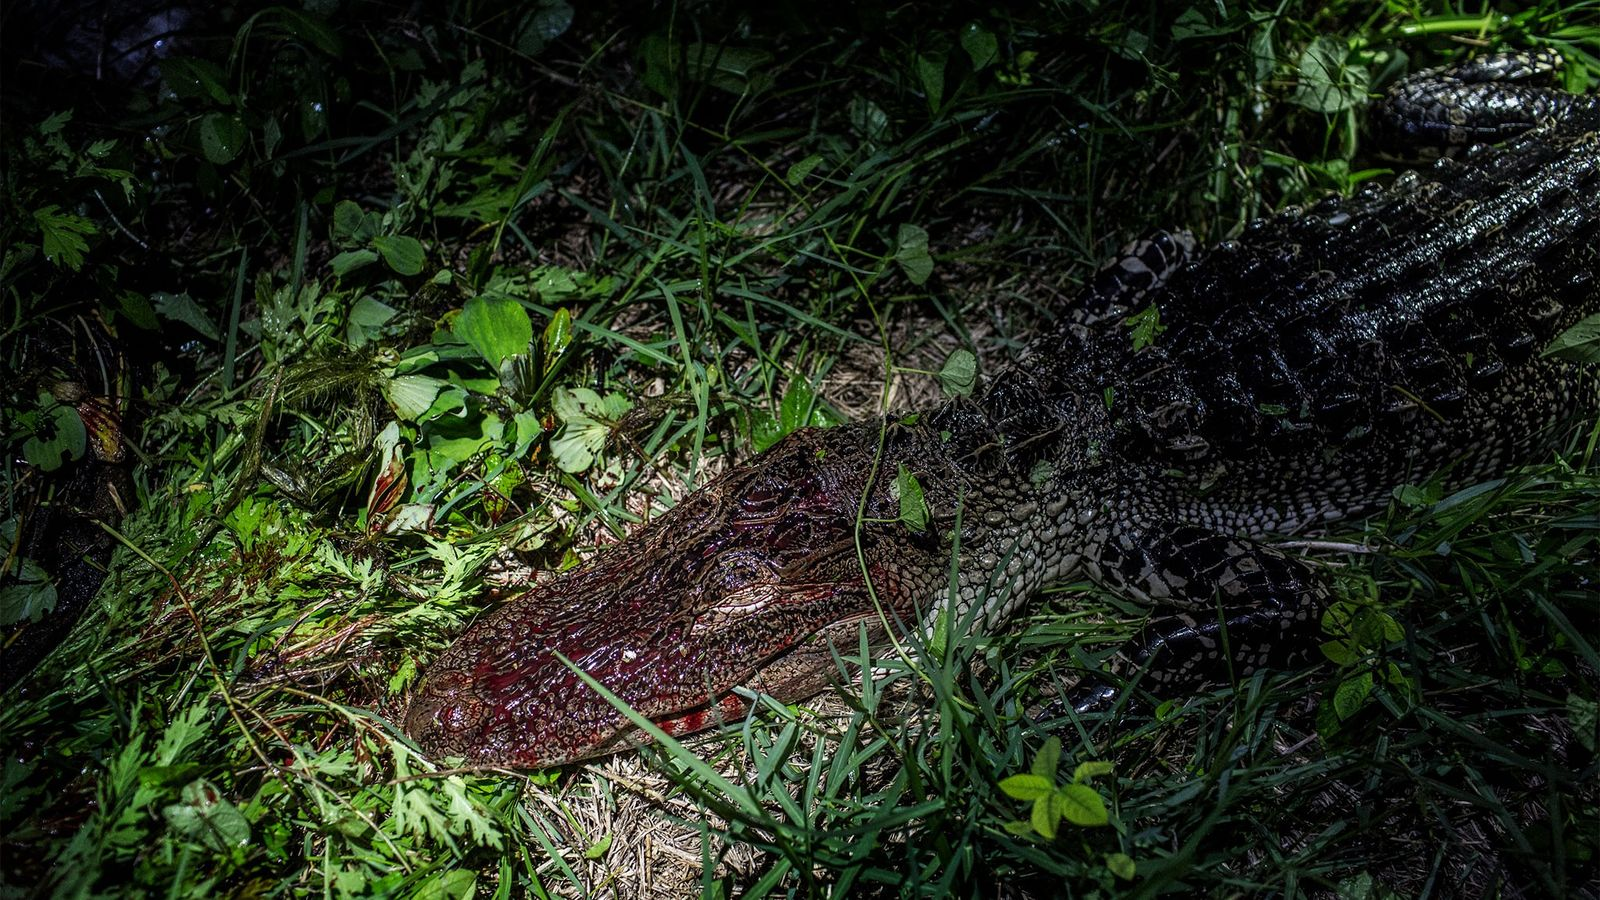 Fifty years ago American alligators were hunted so heavily that they were classified as an endangered ...